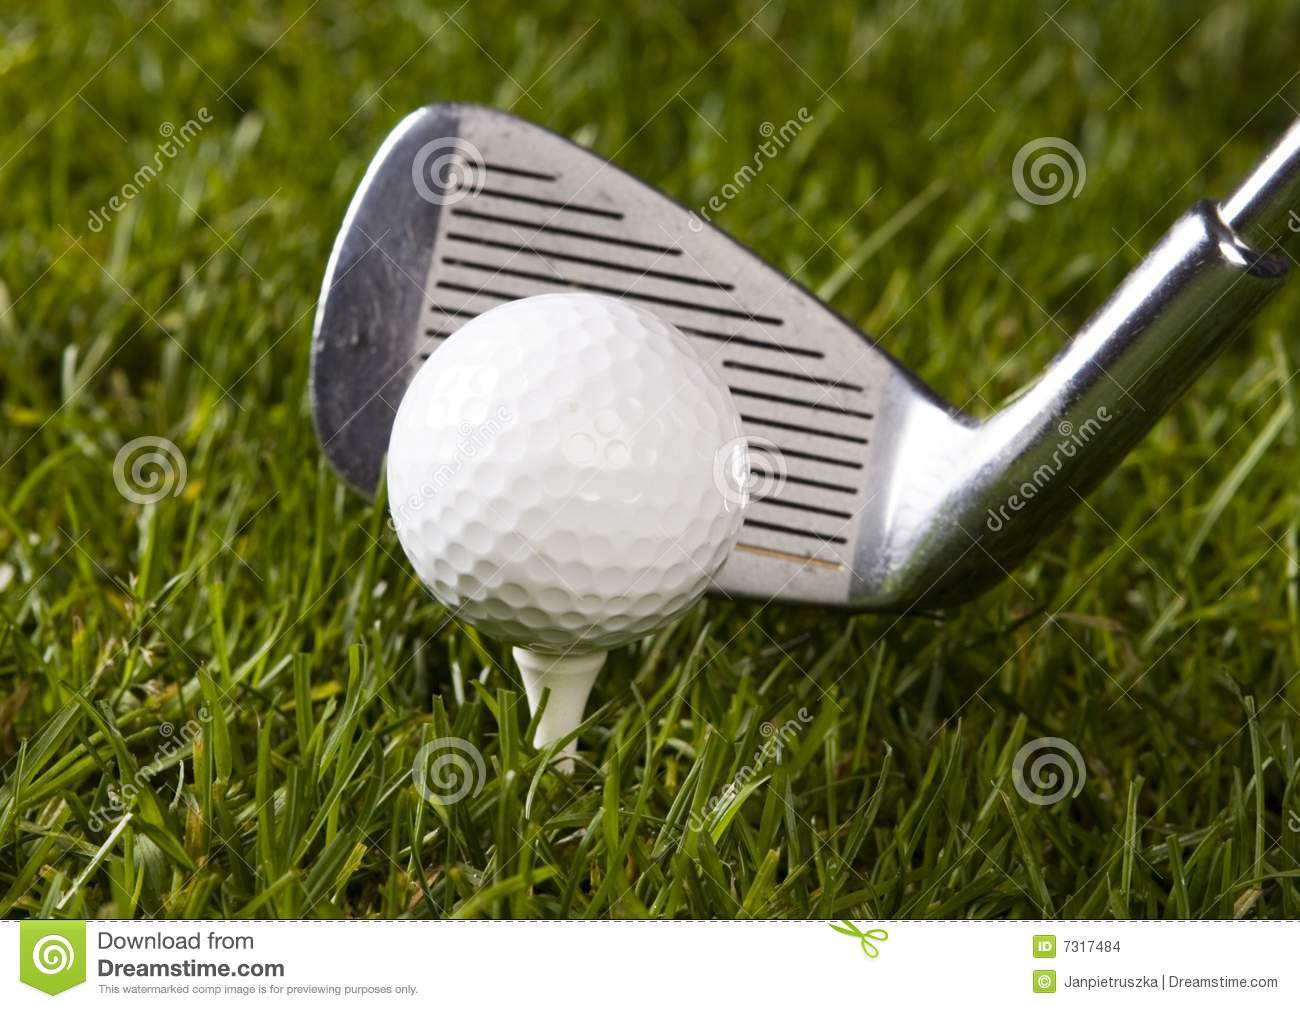 Golf ball on tee with club